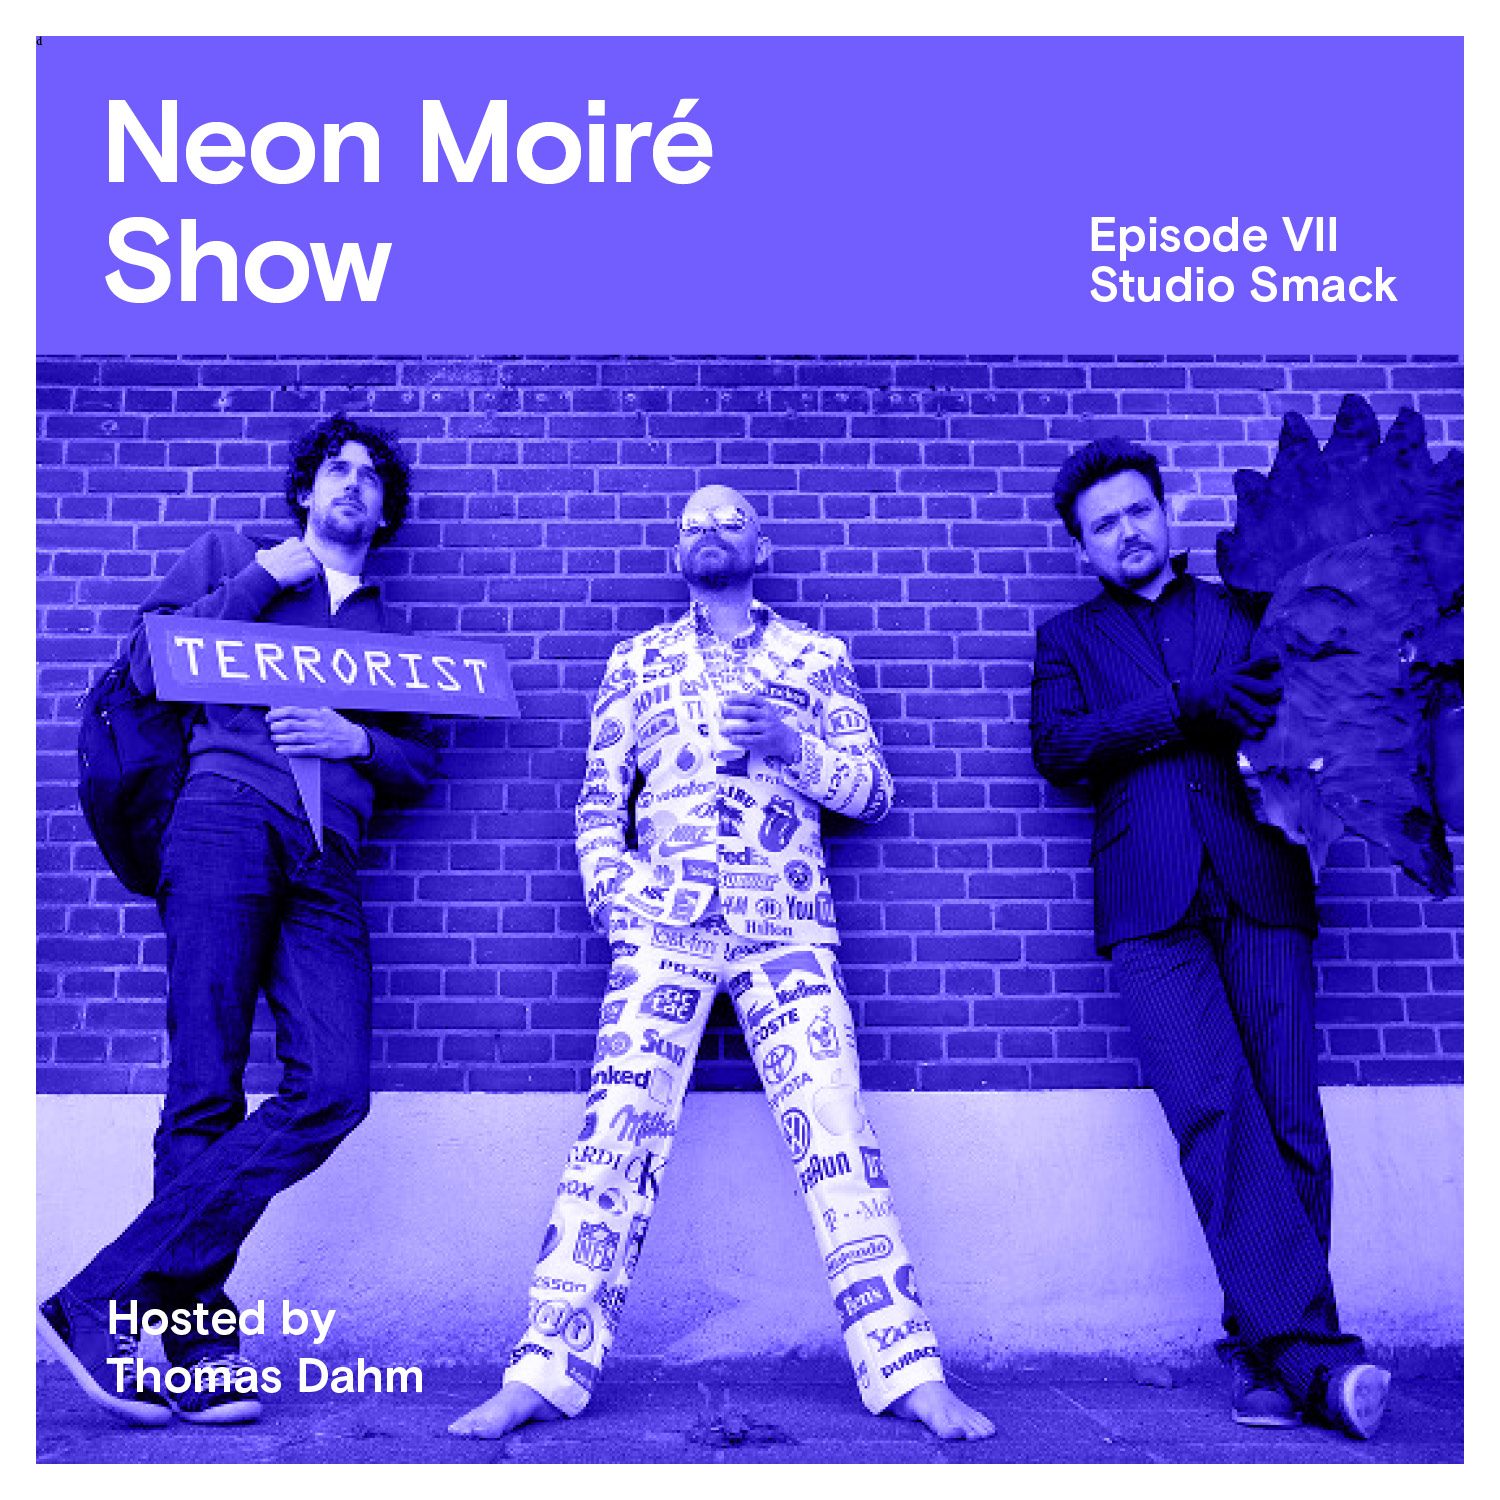 Neon Moiré Show with Studio Smack